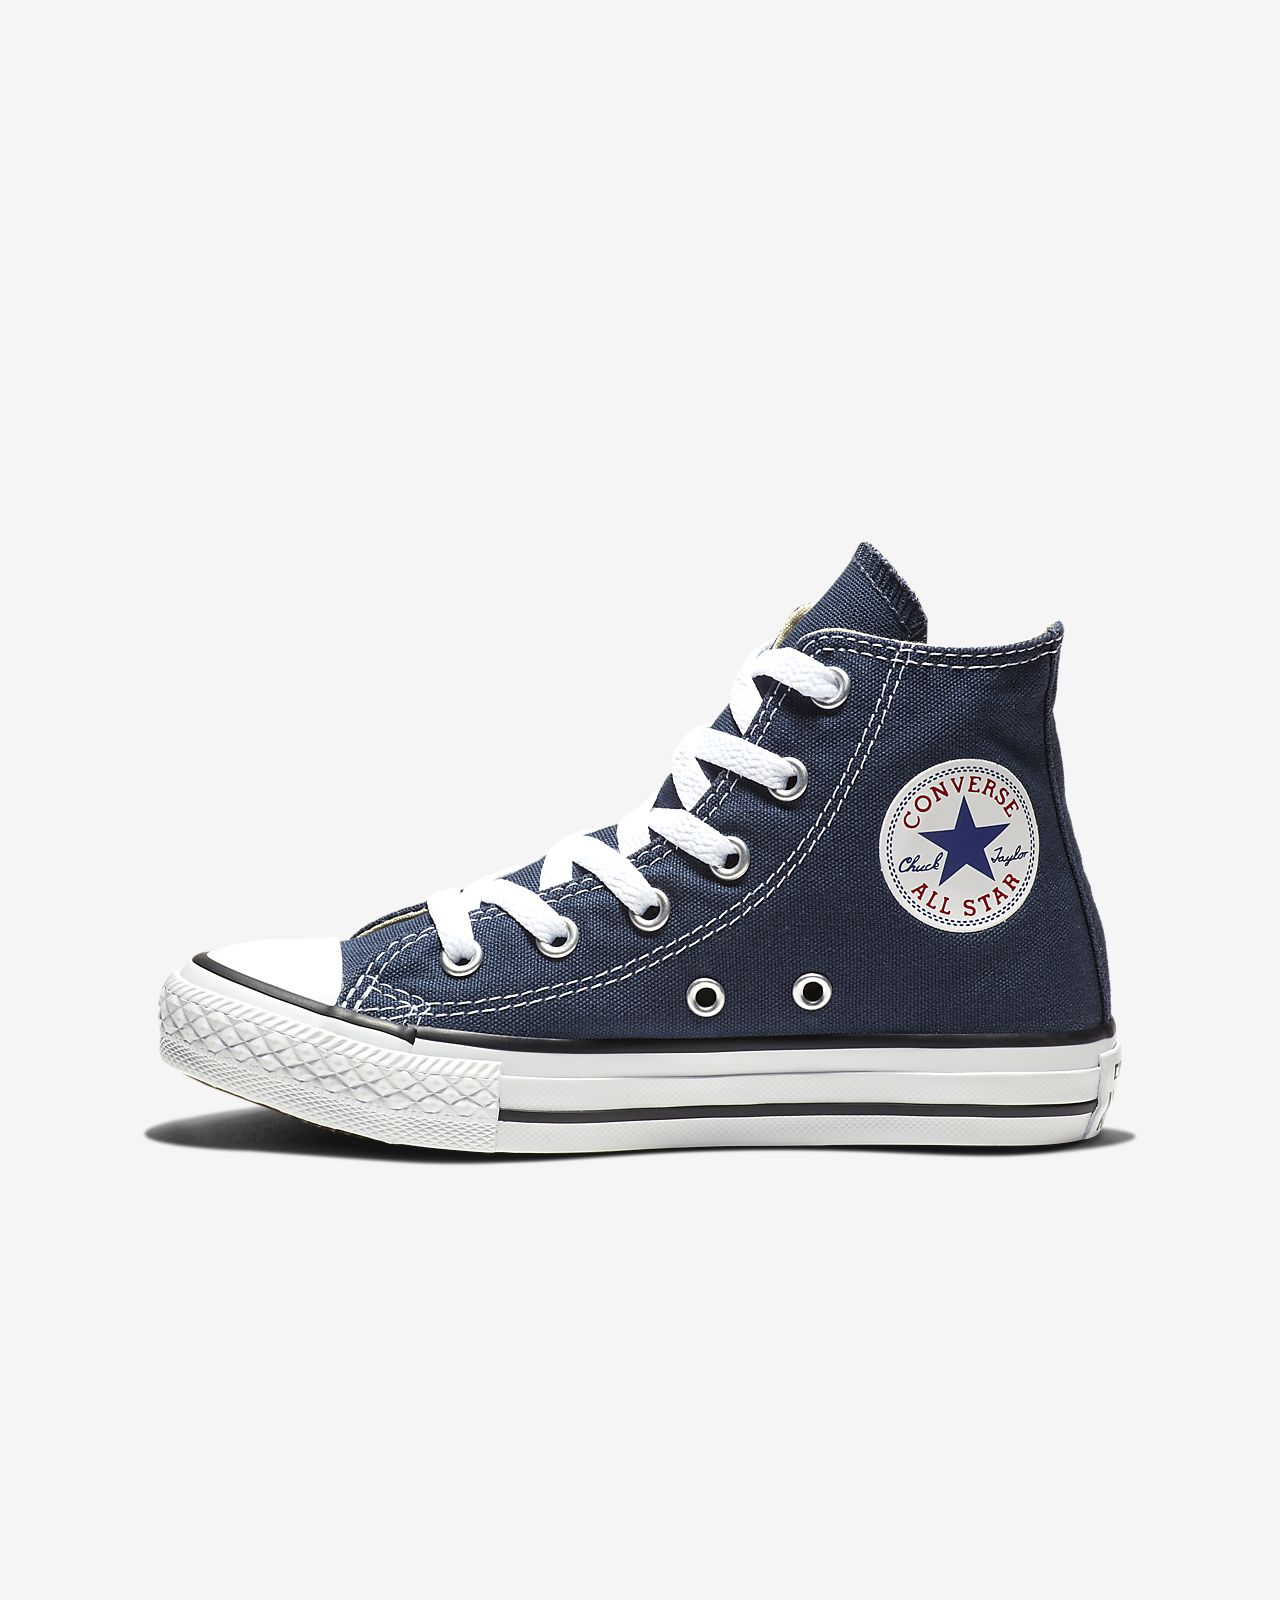 b43a299c1 Converse Chuck Taylor All Star High Top (10.5c-3y) Little Kids' Shoe